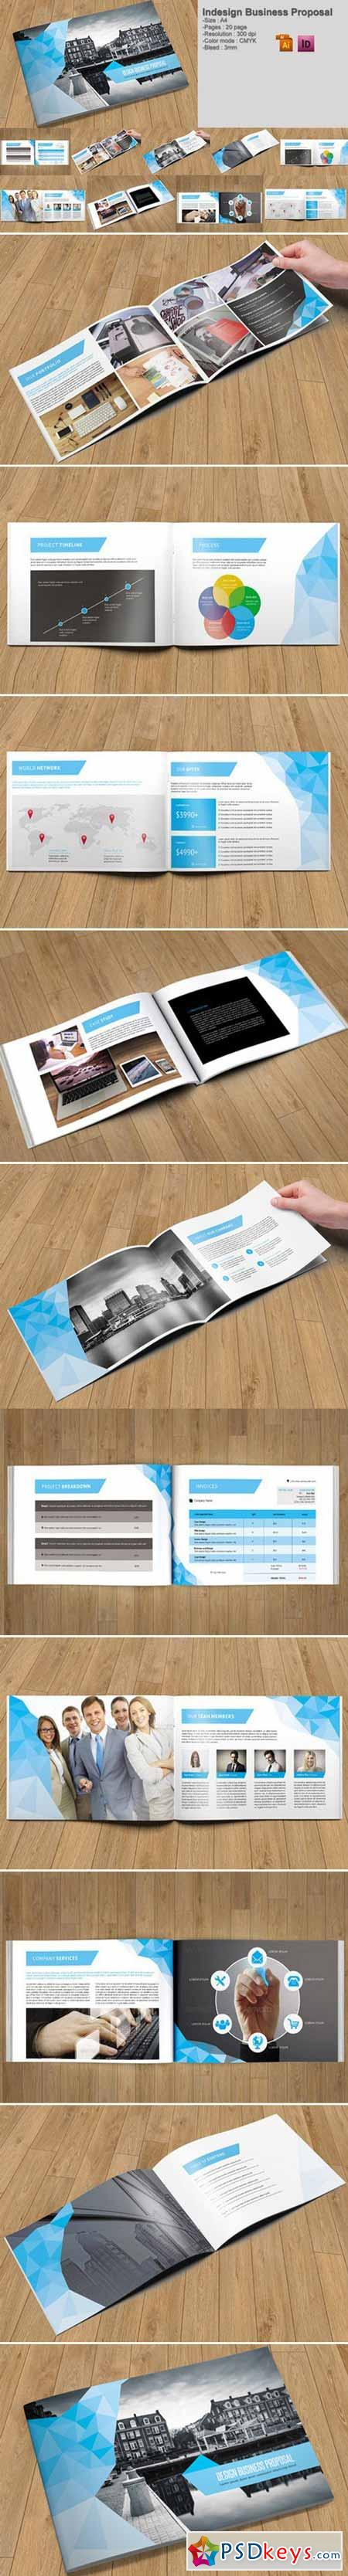 Indesign Business Proposal-V213 410758